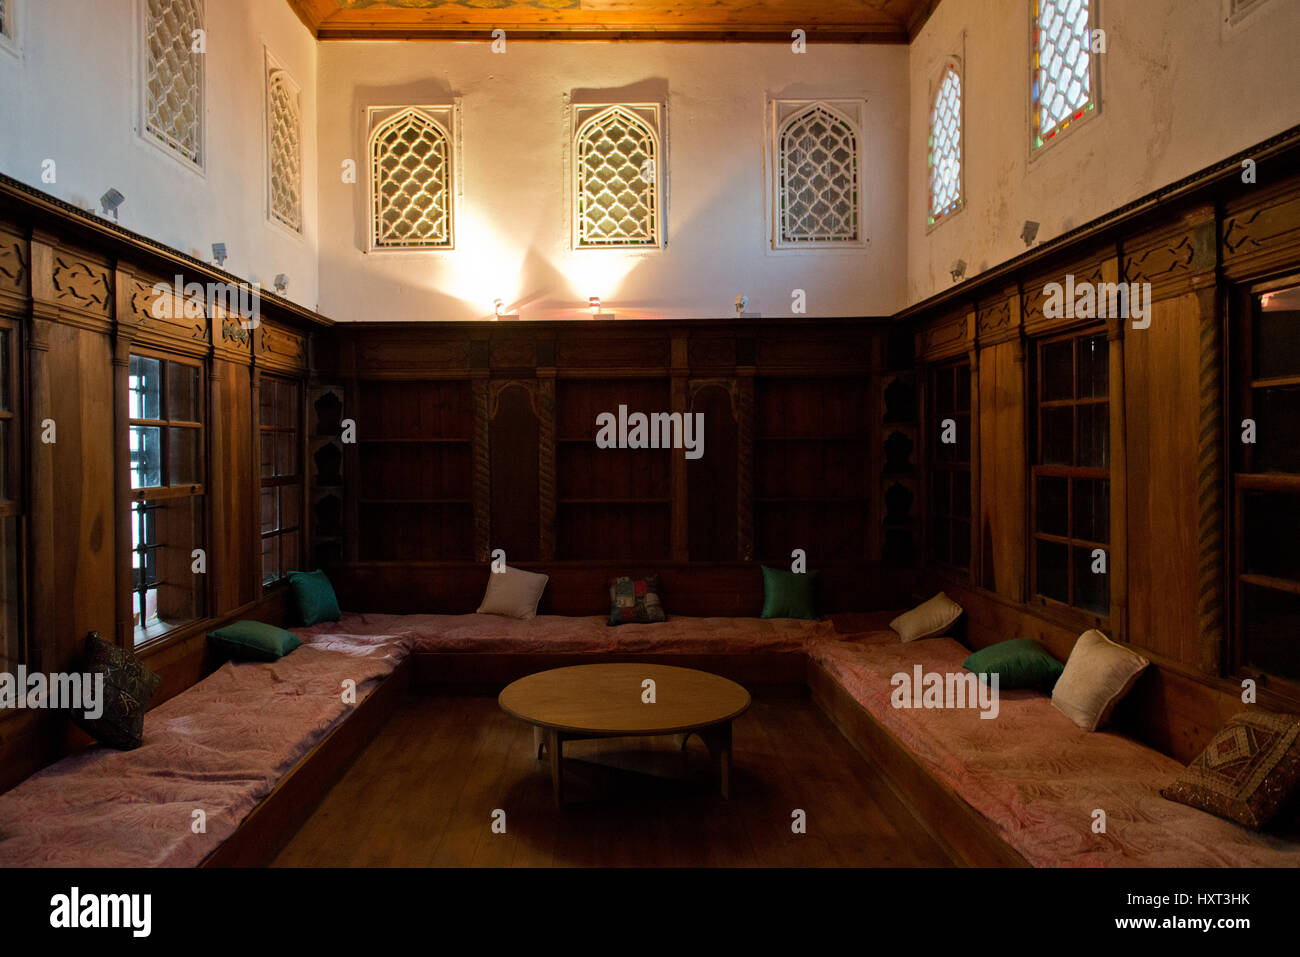 living room of ancient arabic house in the garden of the Archeological Museum in the ancient city of Rhodes, Dodecanese, - Stock Image